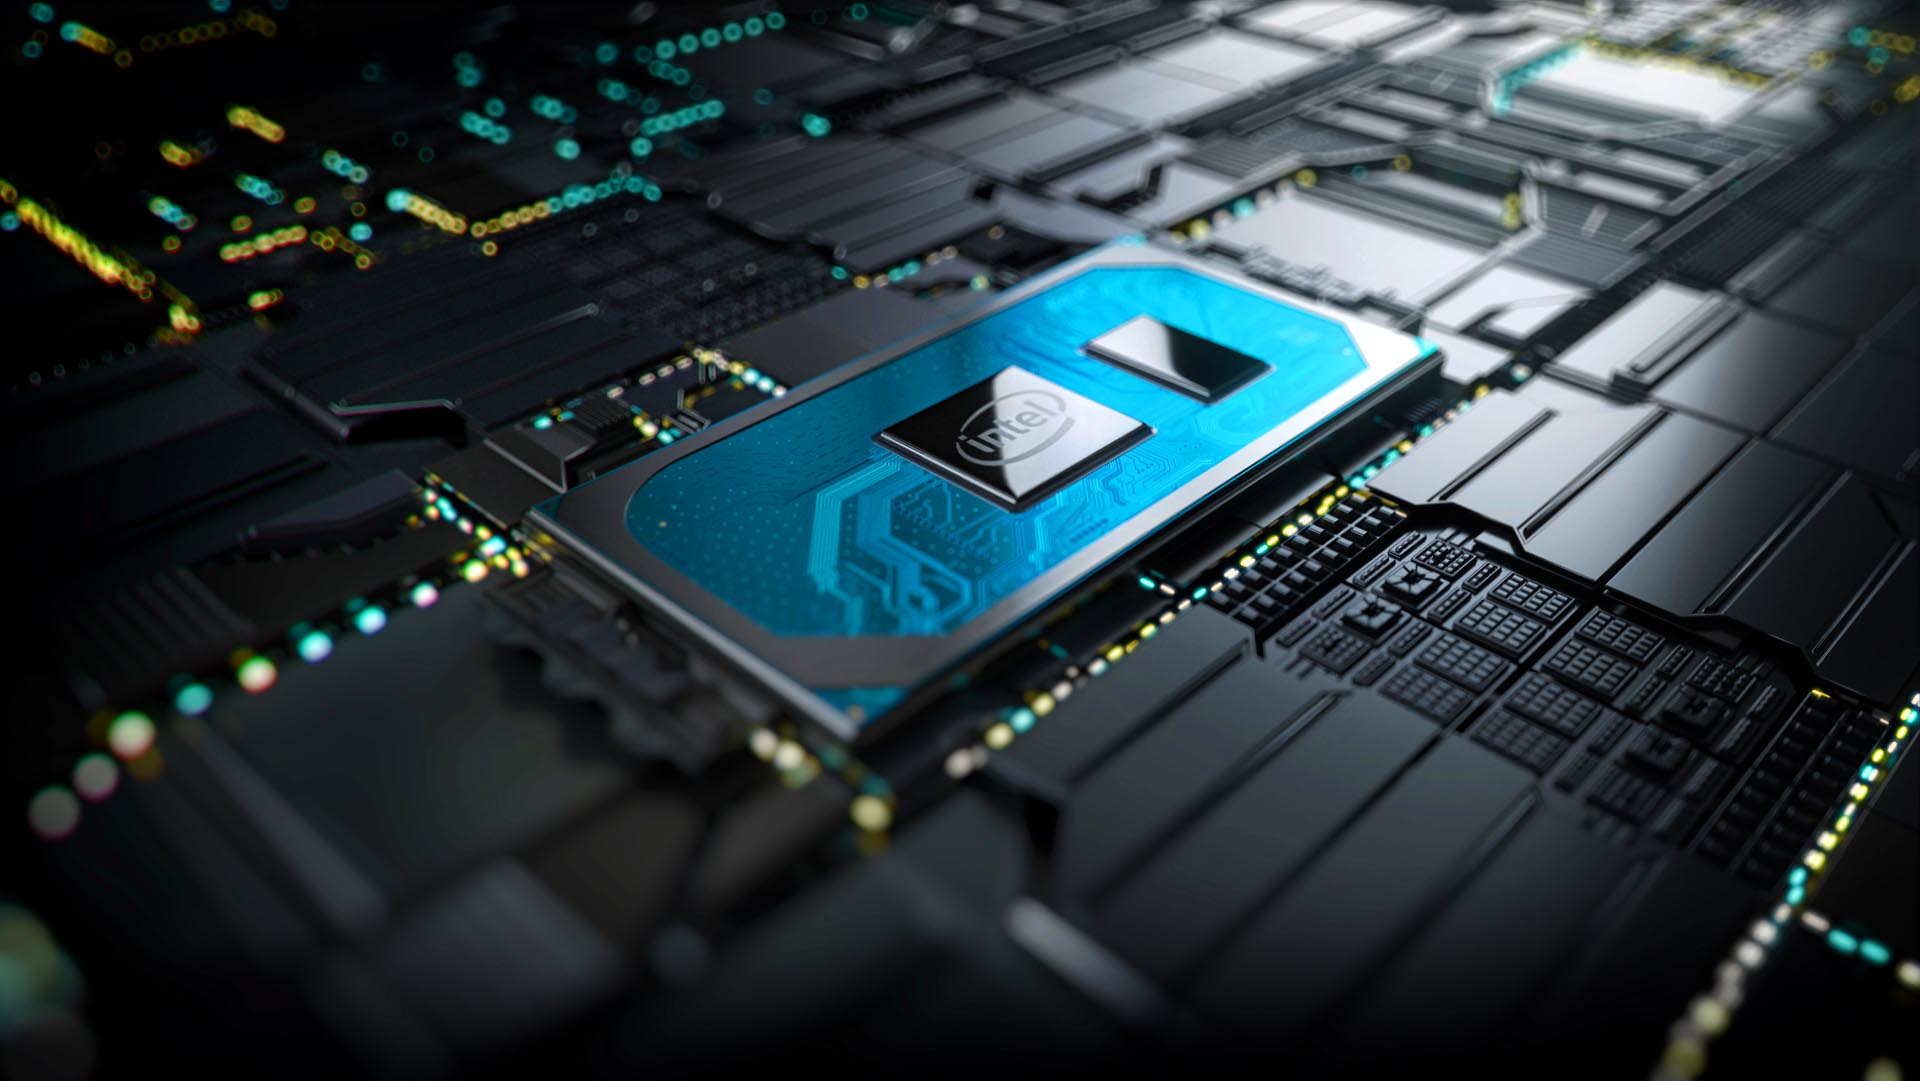 Intel teases Comet Lake H-series to go toe to toe with AMD Ryzen 4000 on cell